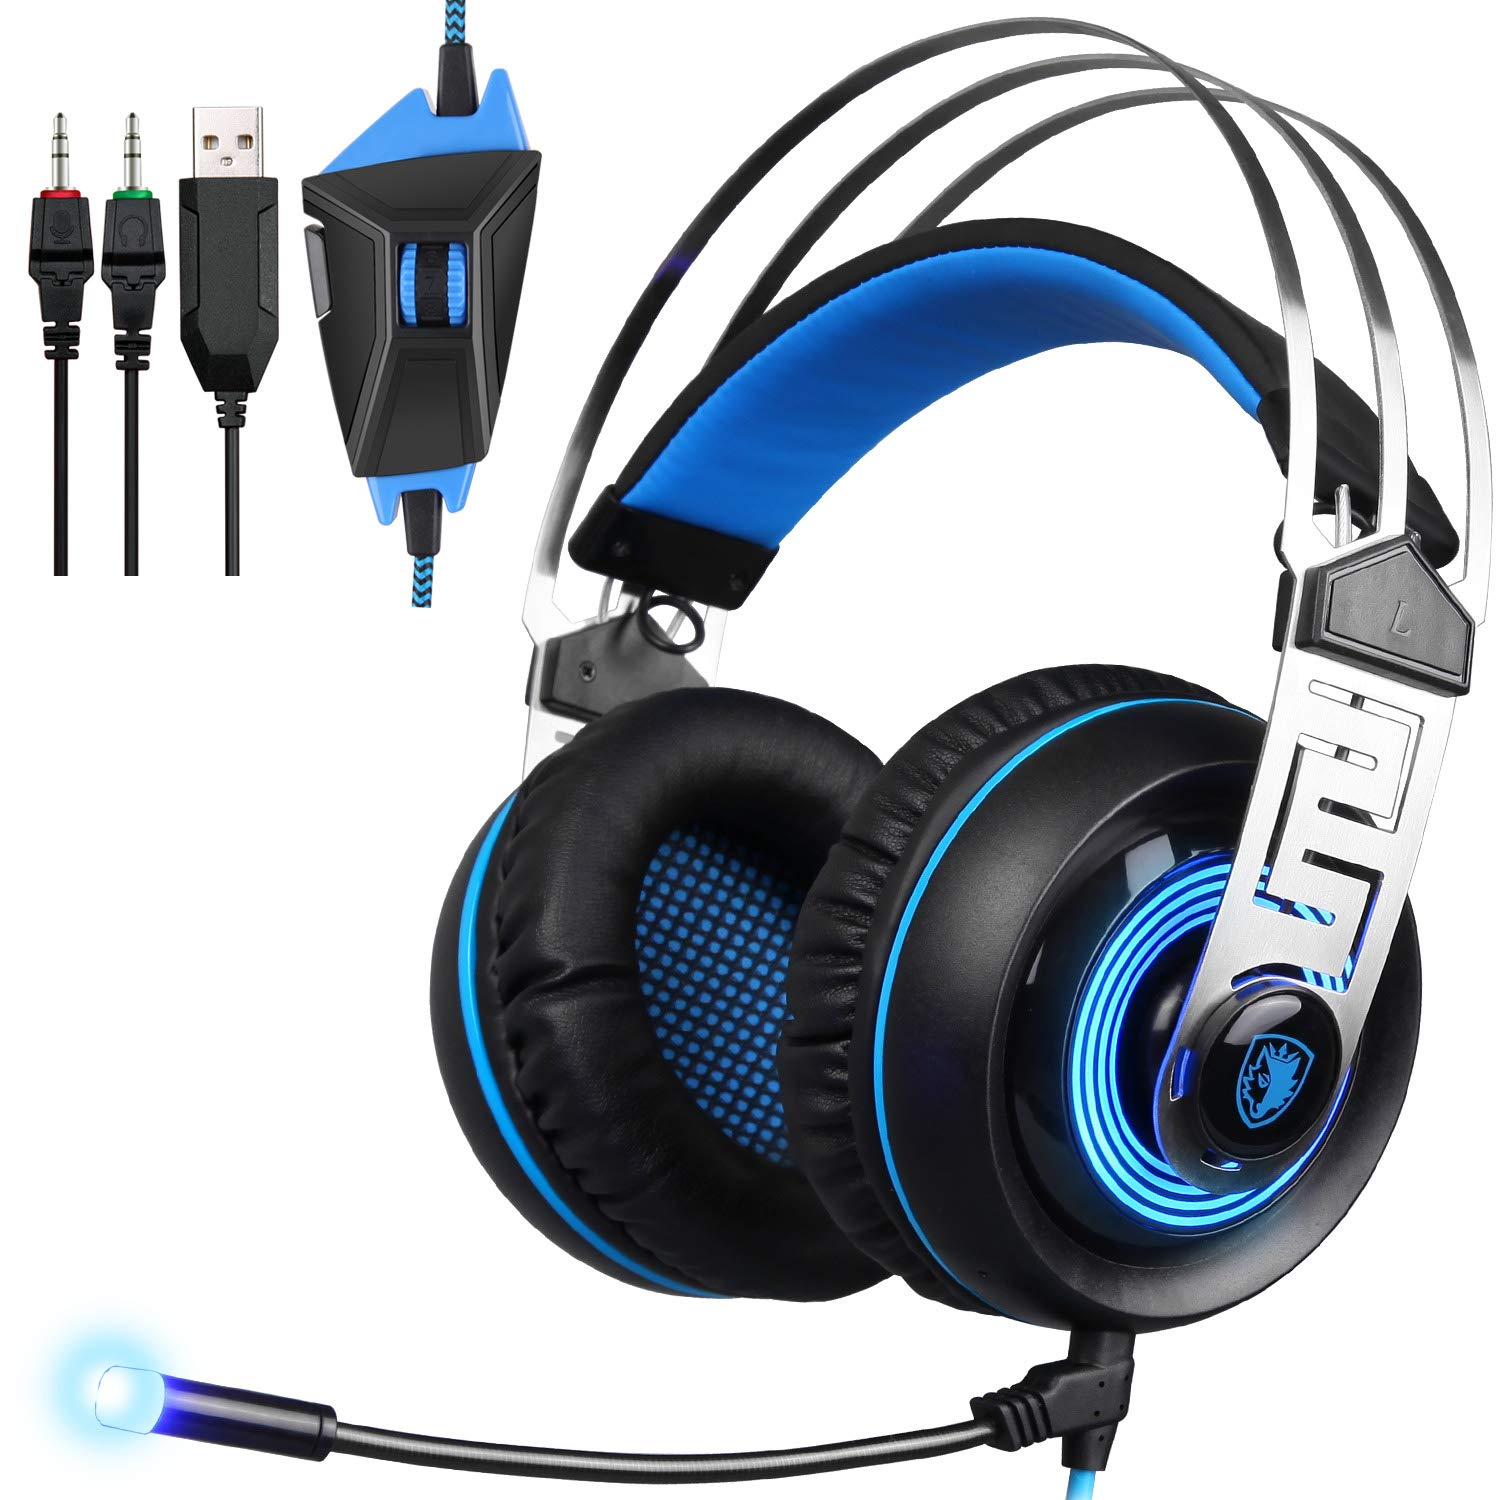 Gaming Headset Compatible Xbox One, SADES PS4 Headset with Mic, PC, Noise Cancelling Over Ear Headphones with LED Light Bass Surround Soft Memory Earmuffs Compatible Mac Laptop Choyur